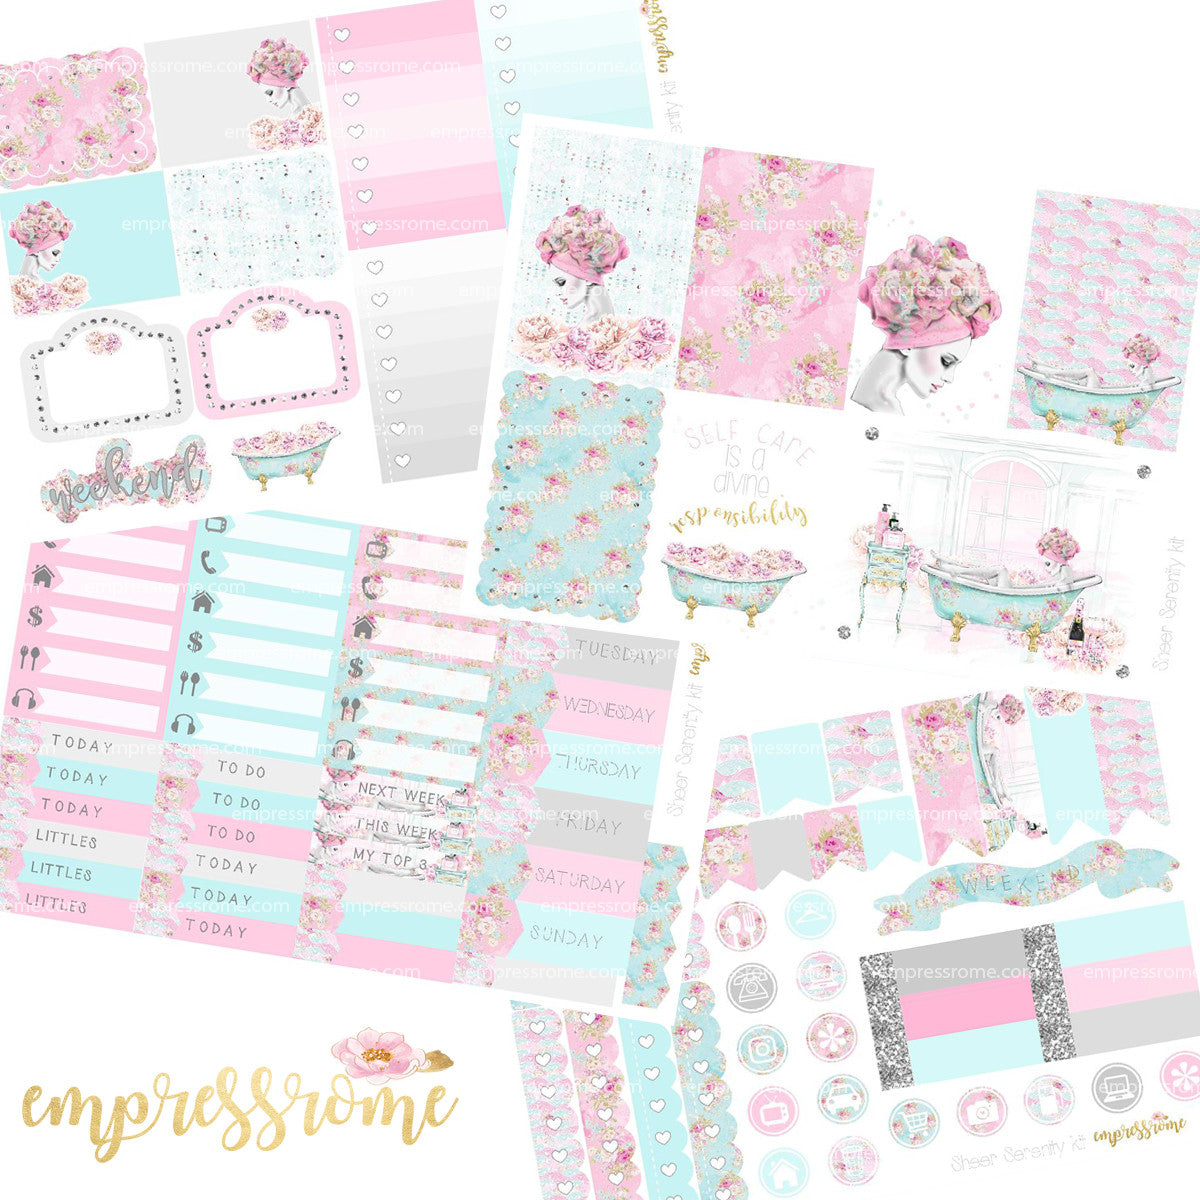 STICKER KIT: SHEER SERENITY